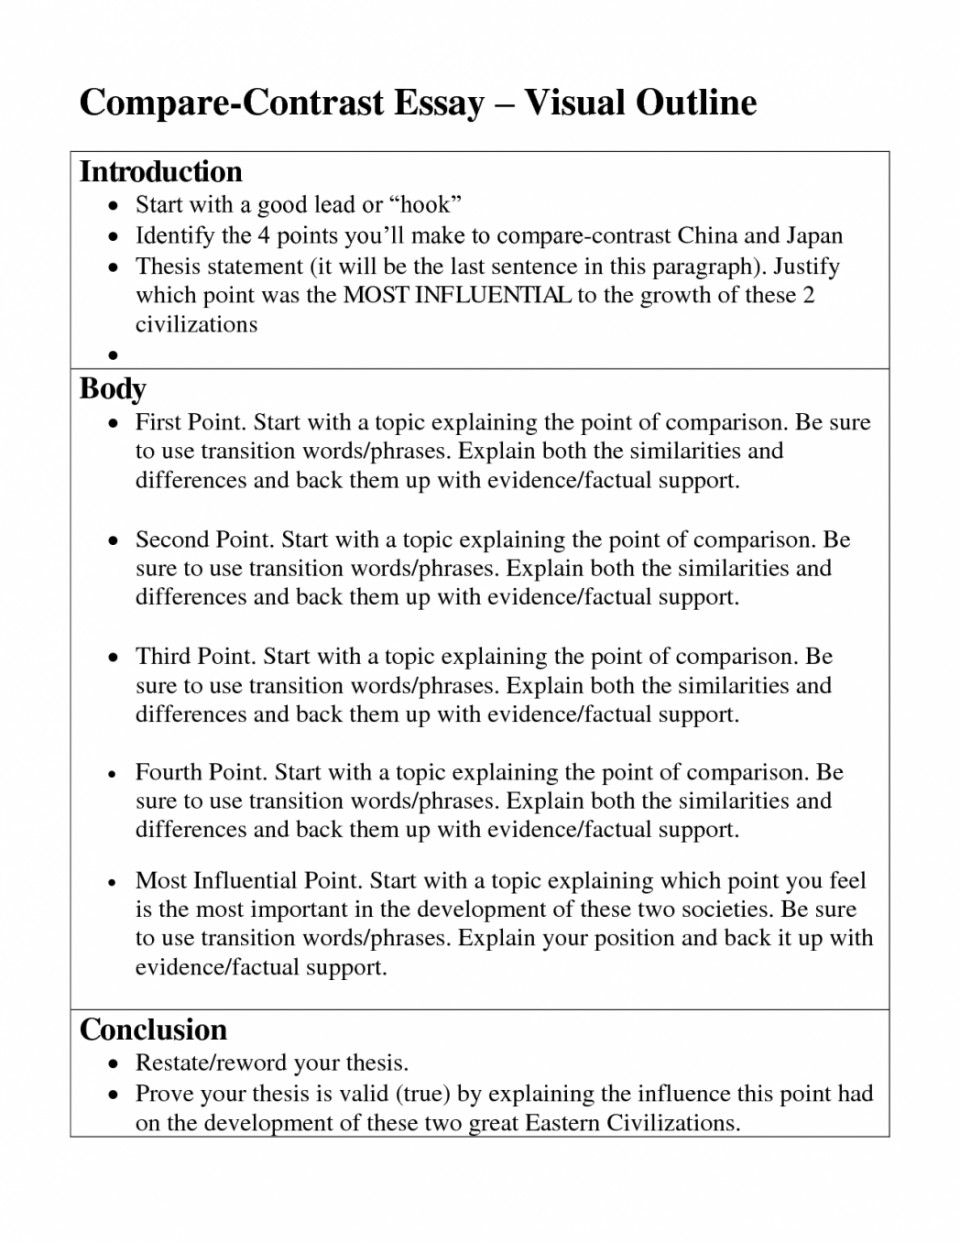 009 Compare And Contrast Essay Topics For High School Students English College Pdf Research Paper 1048x1356 Fantastic Sports Prompts 5th Grade 4th 960